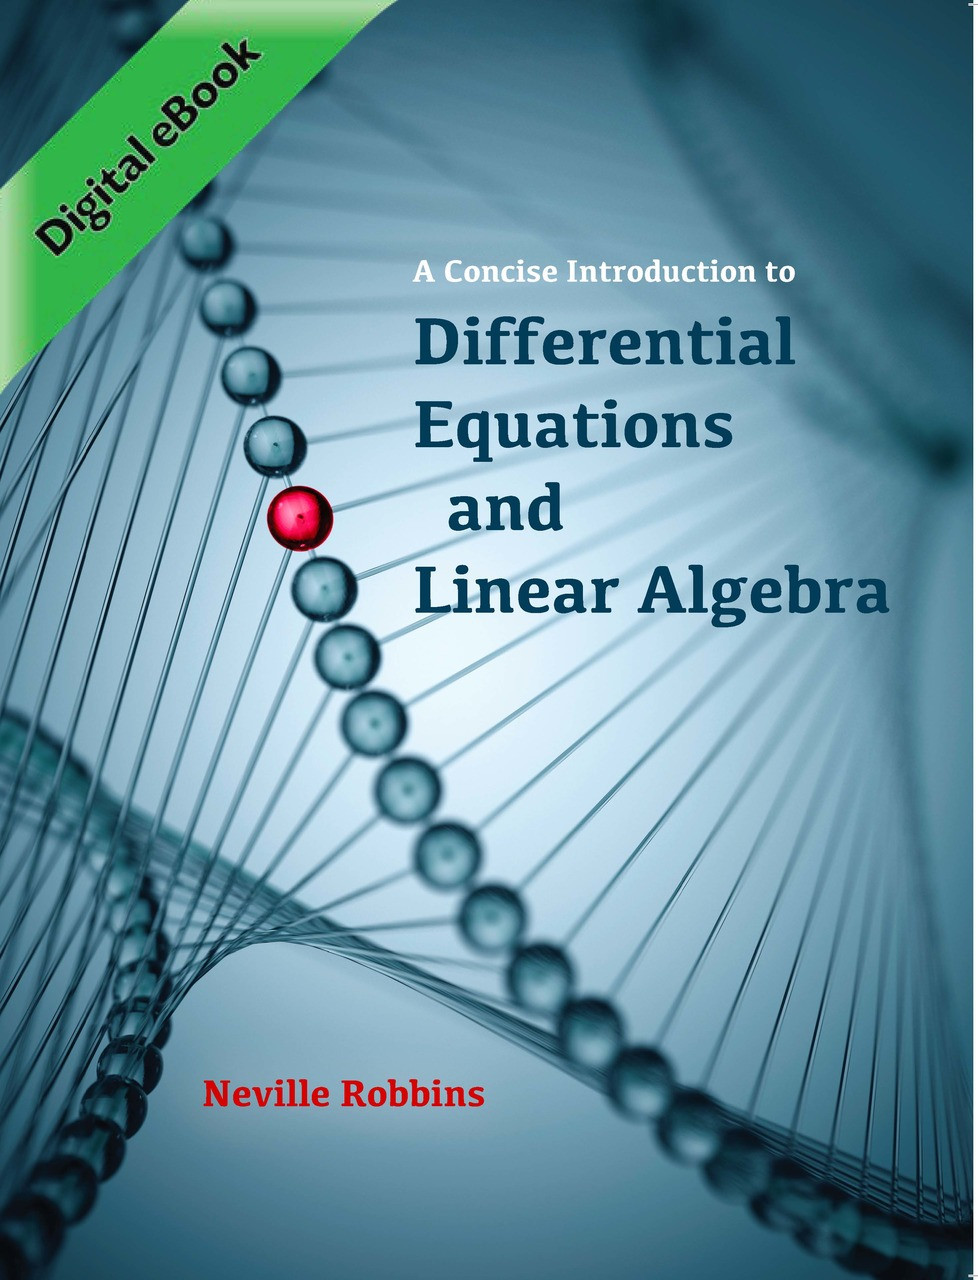 A concise introduction to differential equations and linear algebra image 1 fandeluxe Images